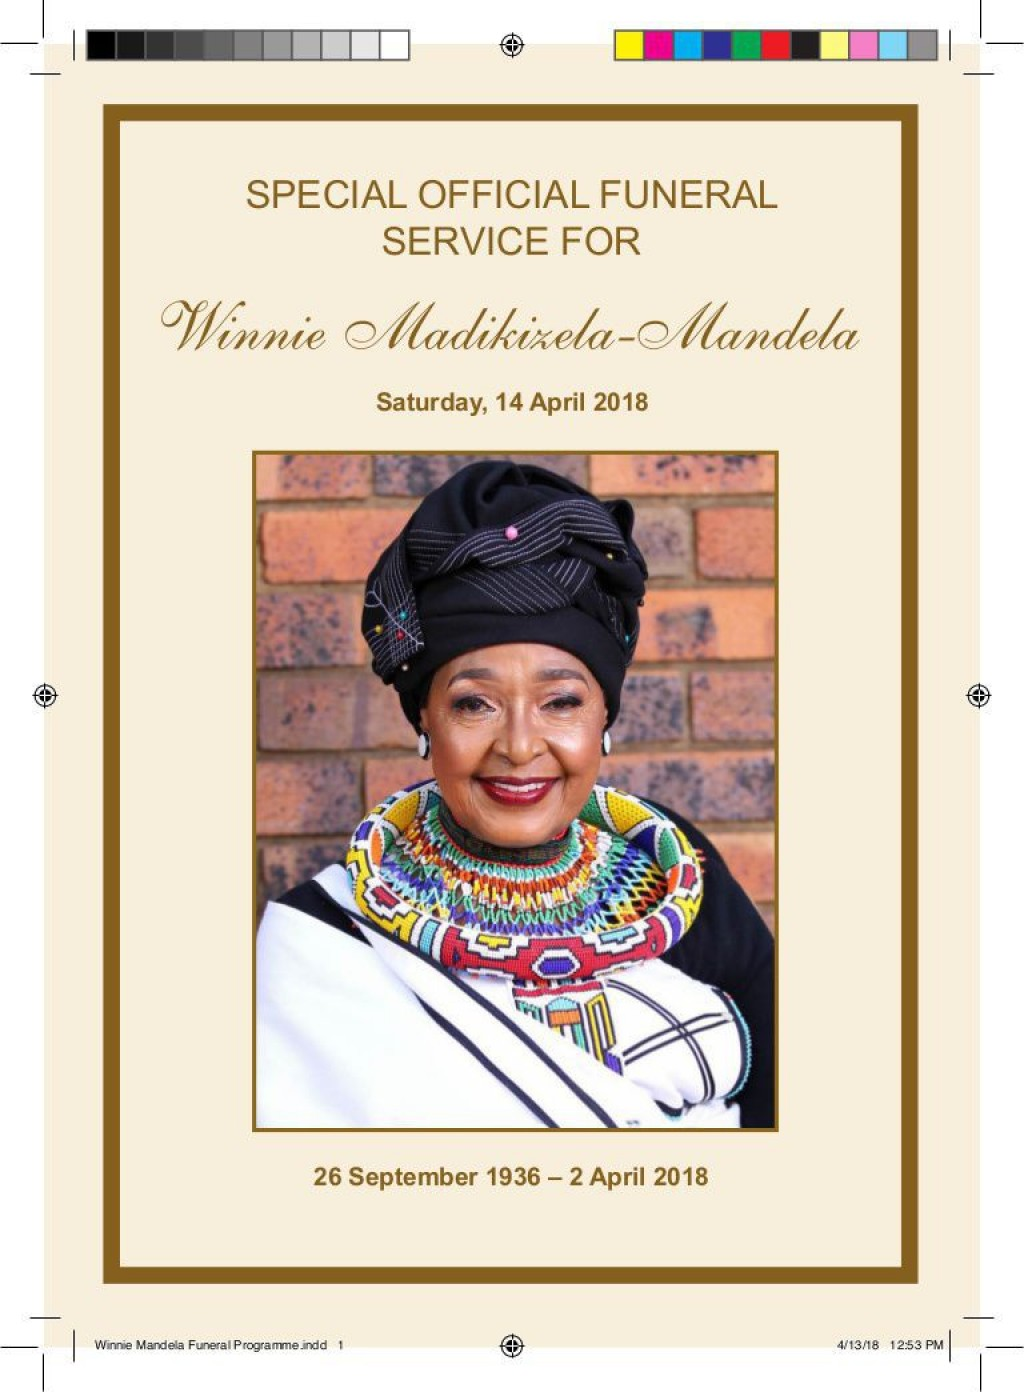 009 Sensational Example Funeral Programme High Resolution  Format Of Program Template Free To DownloadLarge